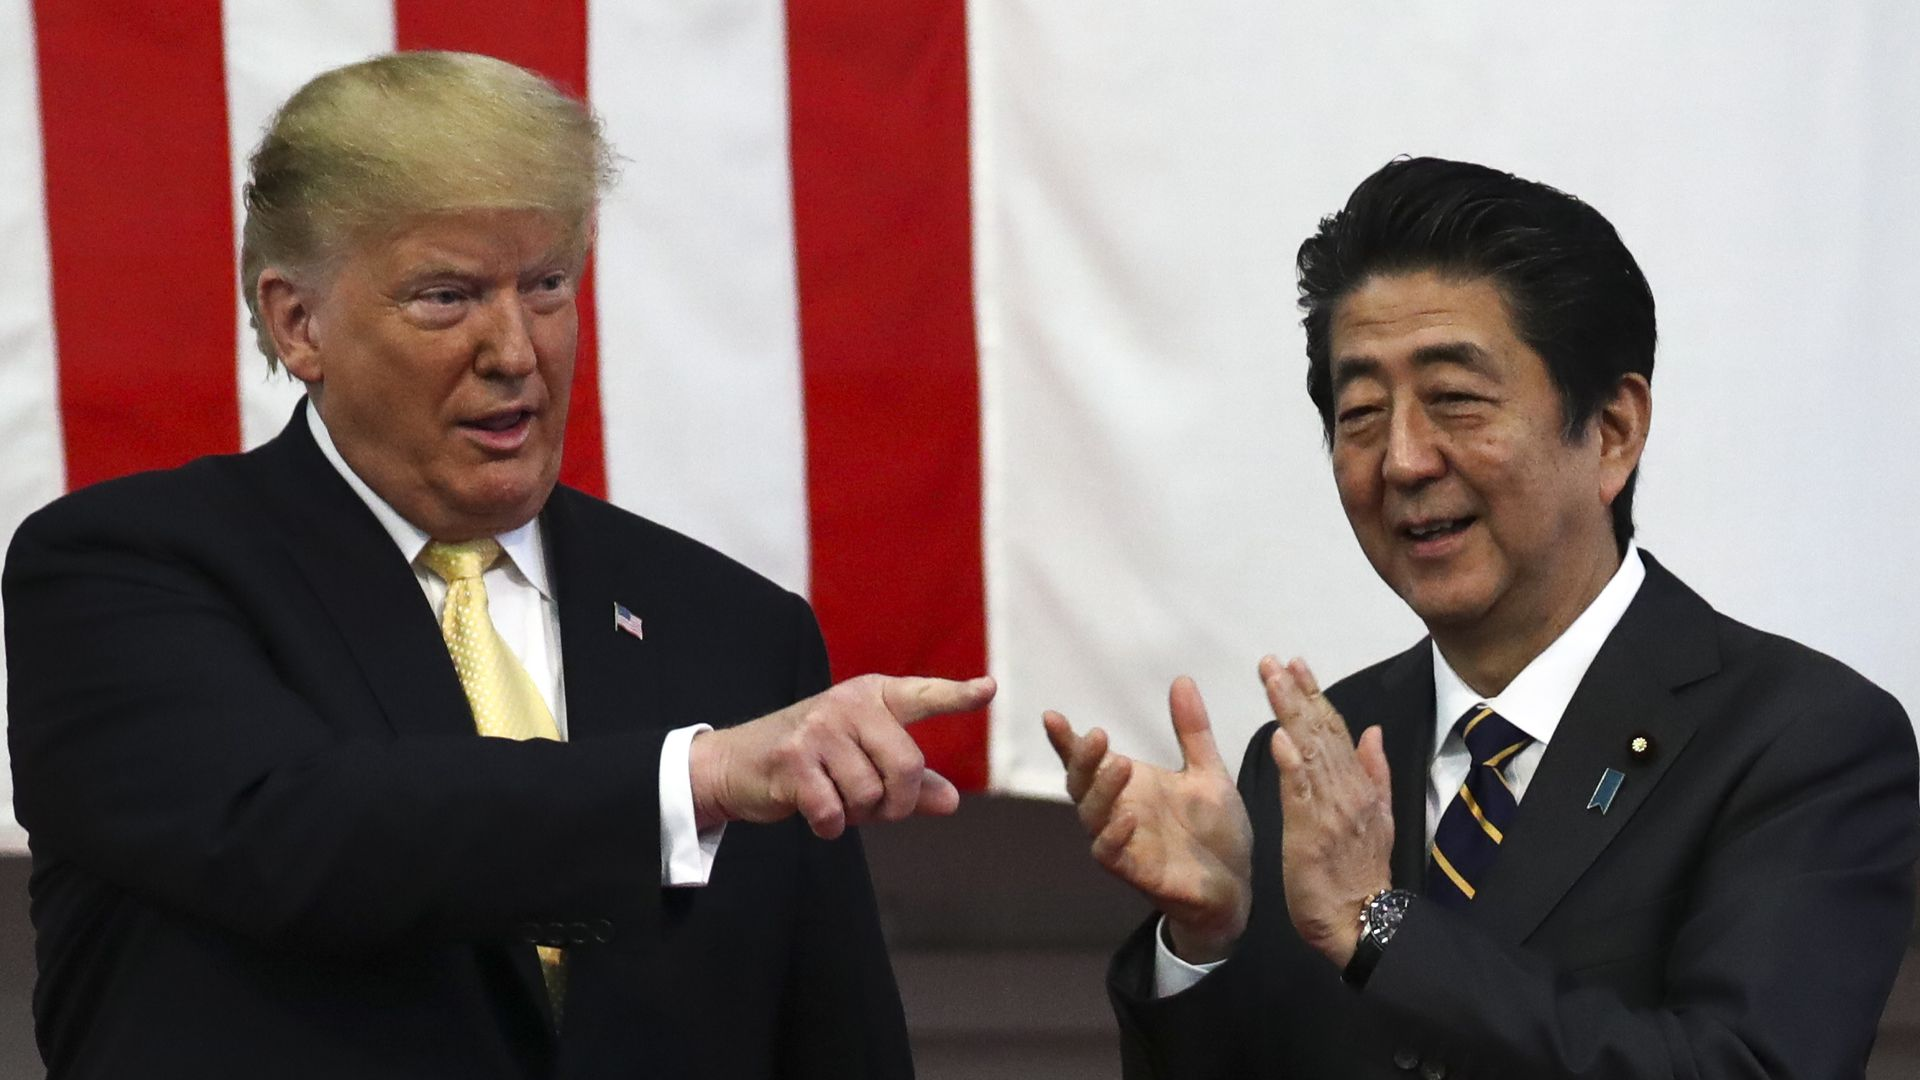 Donald Trump and Shinzo Abe standing side by side